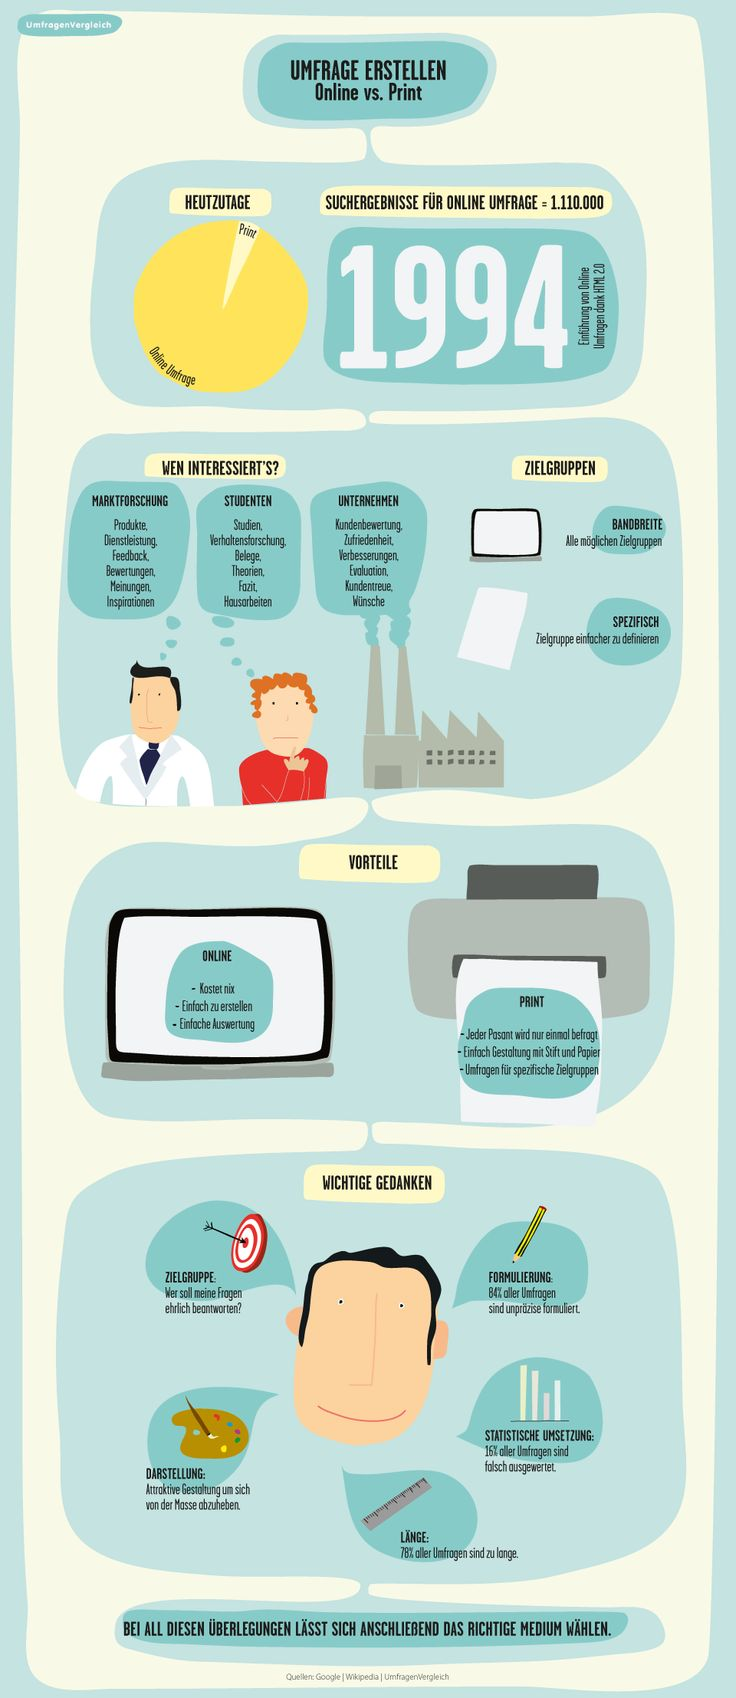 German infographic about how to make a survey and what are the essential thoughts to do so - All about Online versus Print in the world of surveys.